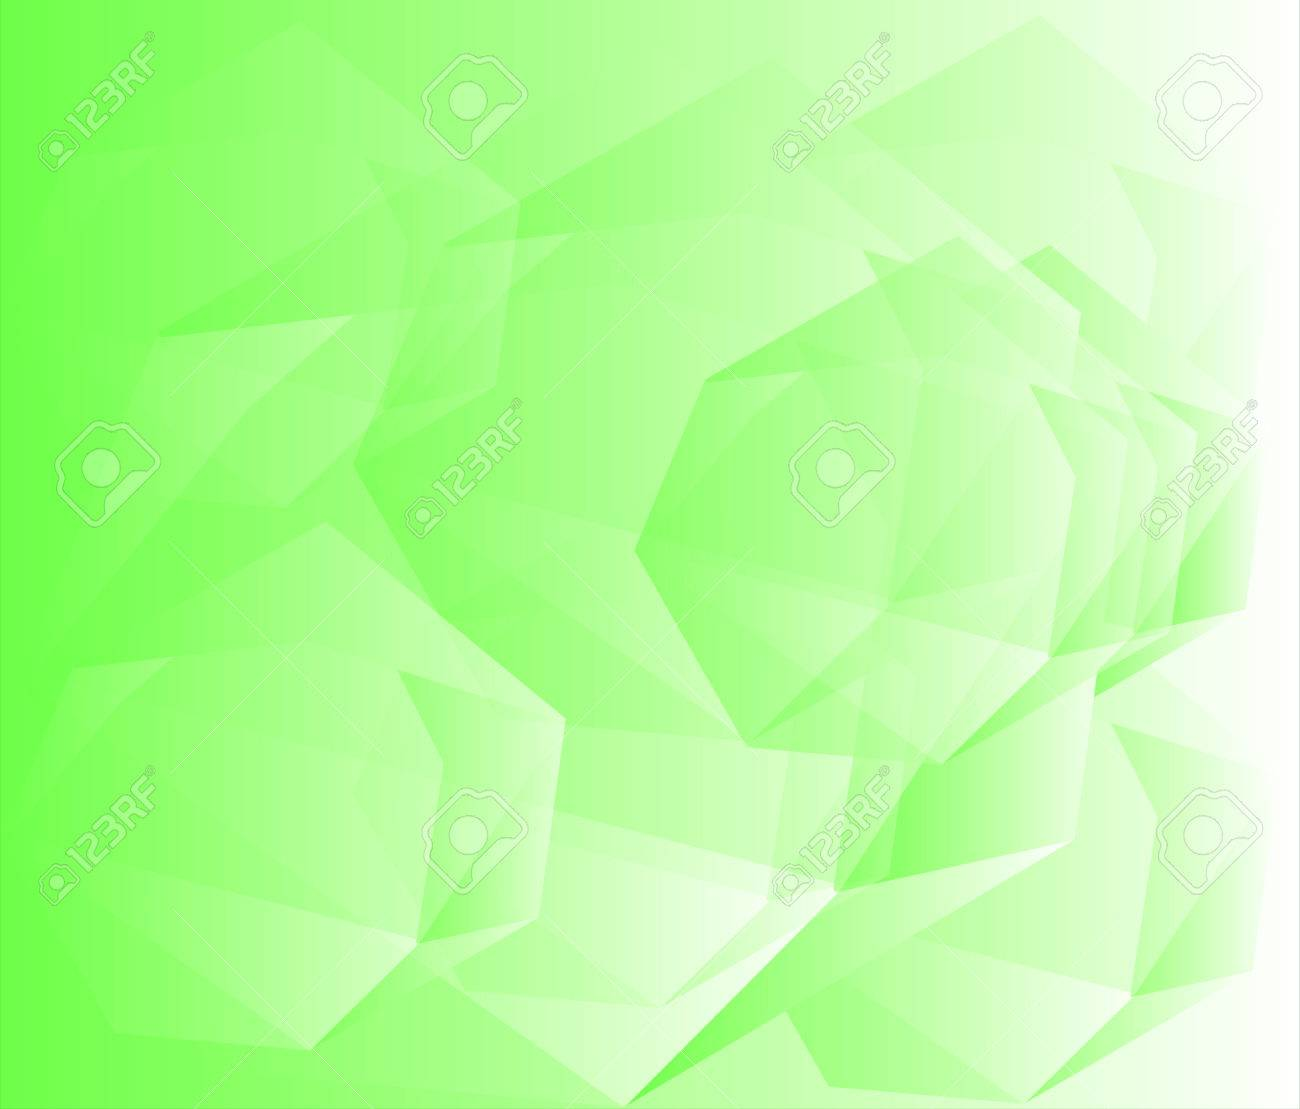 Soft Light Green Background Stock Photo Picture And Royalty Free